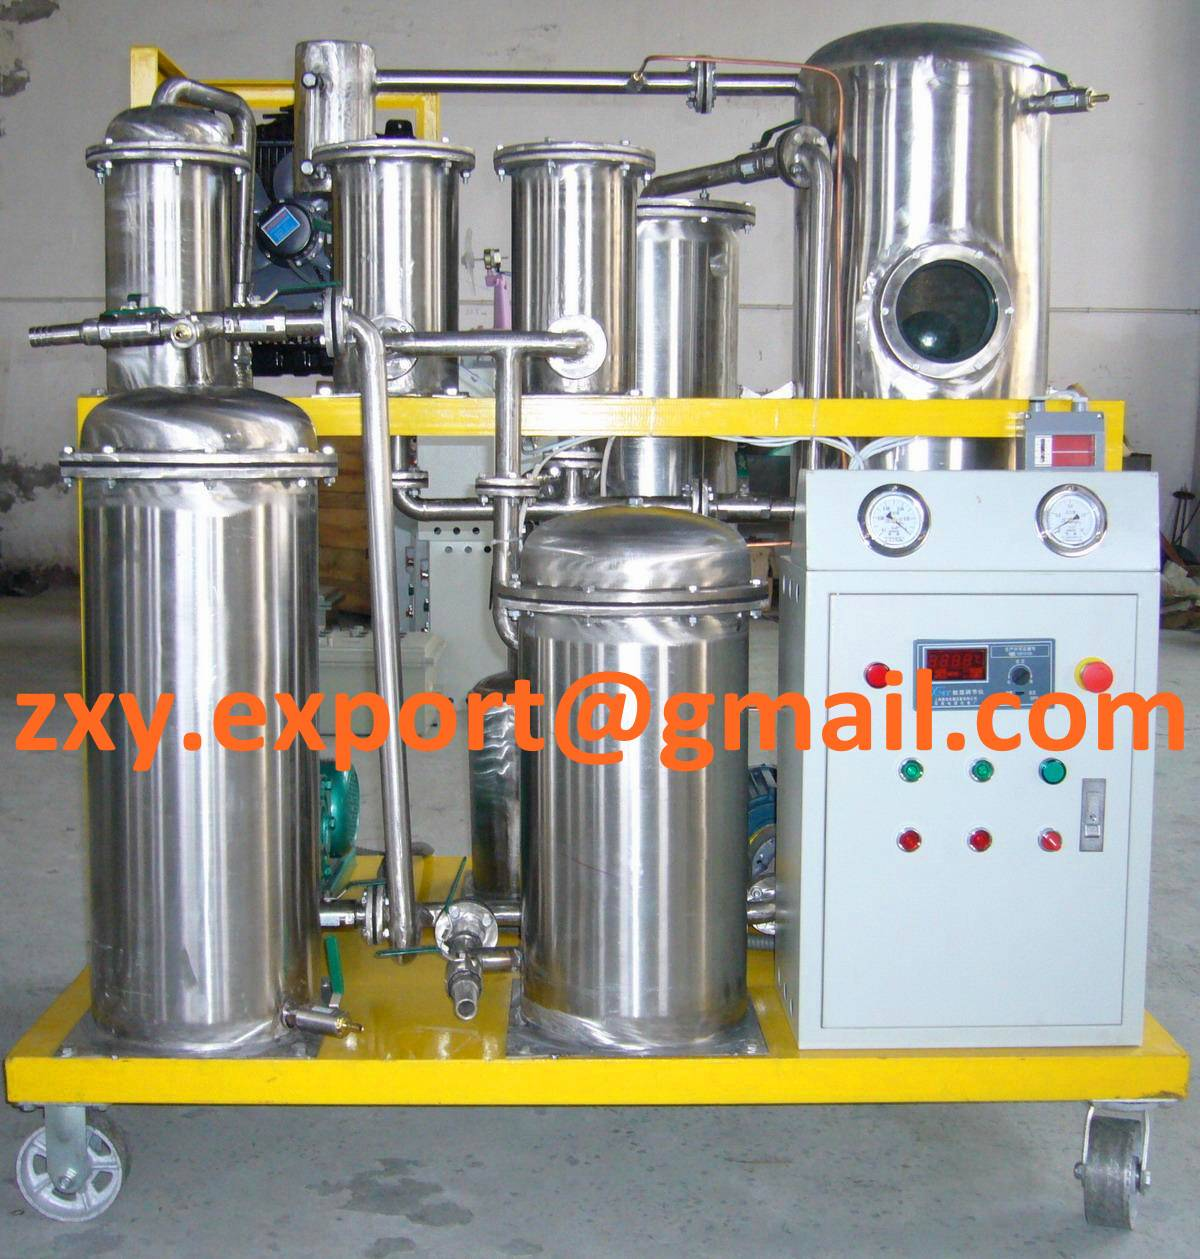 Stainless Steel Lube Oil Purification Machine, Hydraulic Oil Filtration Plant